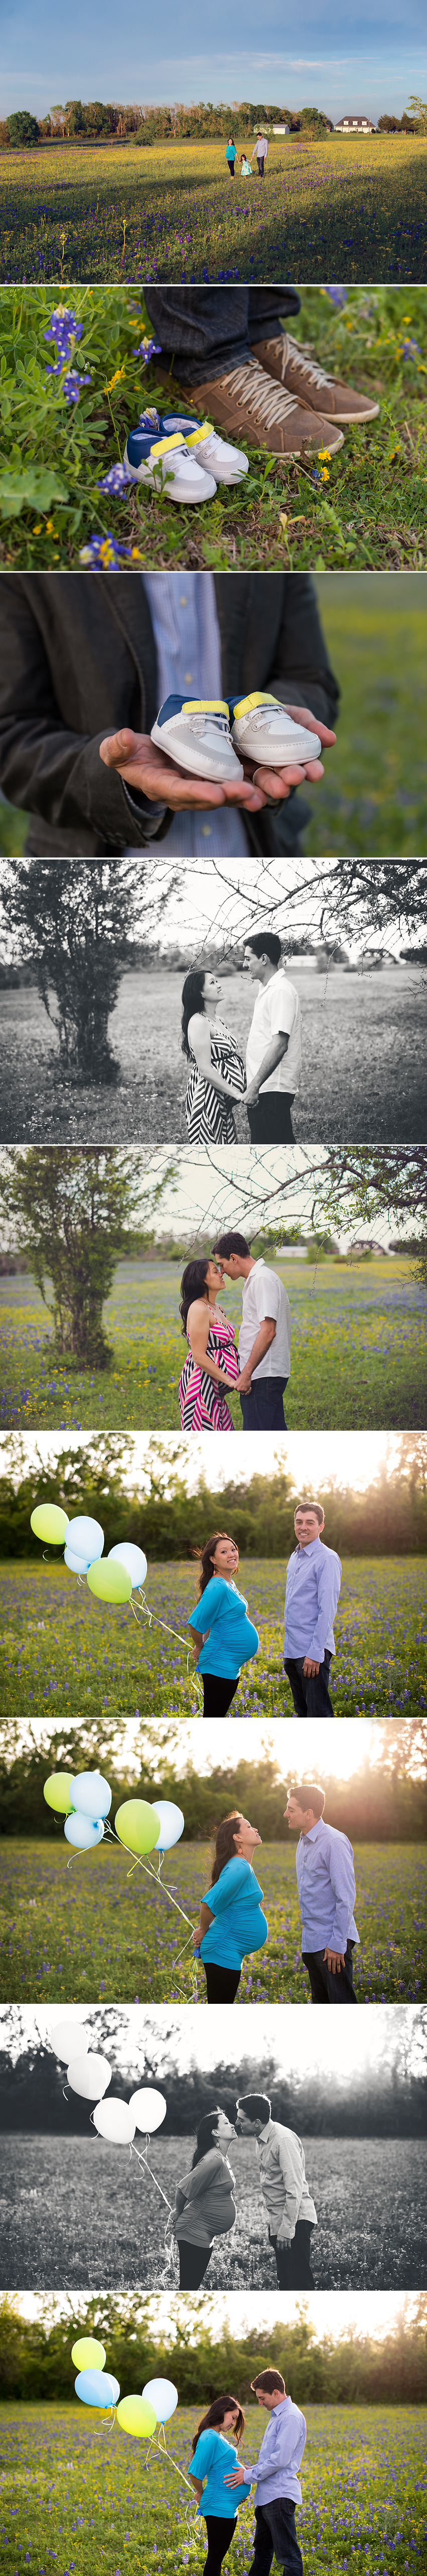 houston photographer